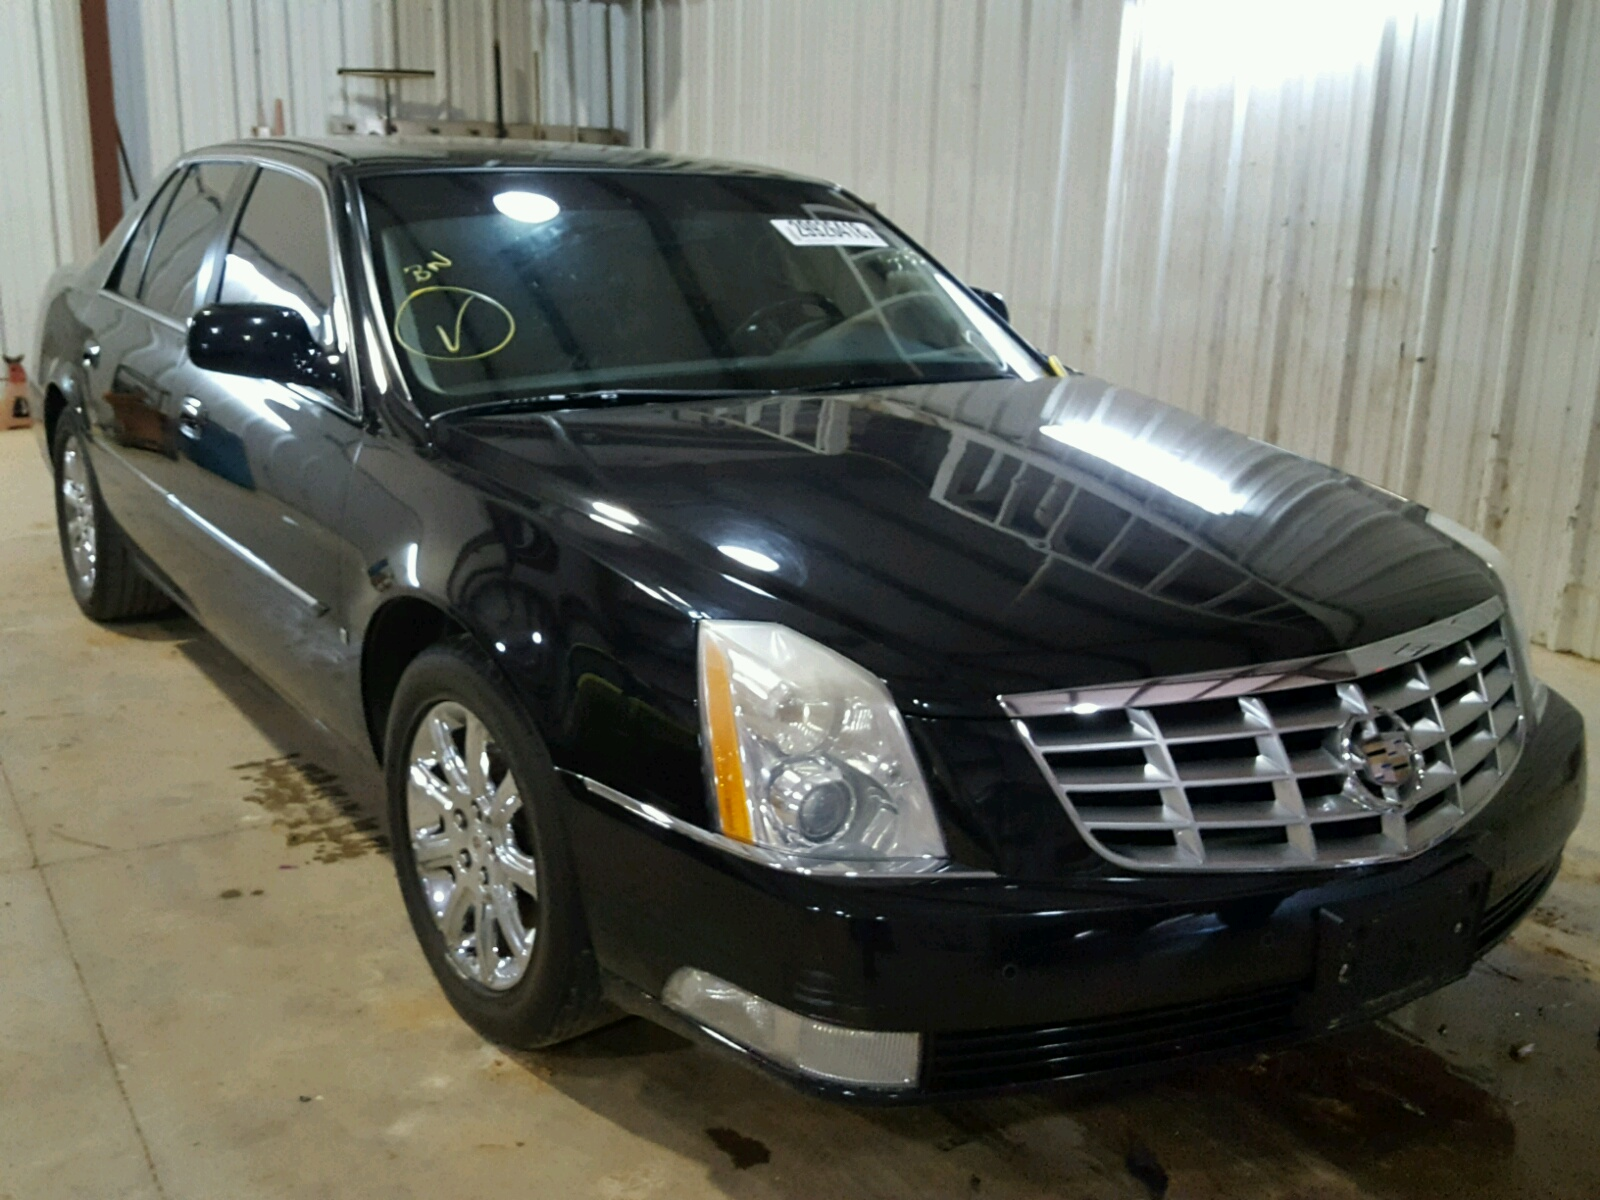 photos com photogallery new photo pictures carsbase pic model with pics dts cadillac